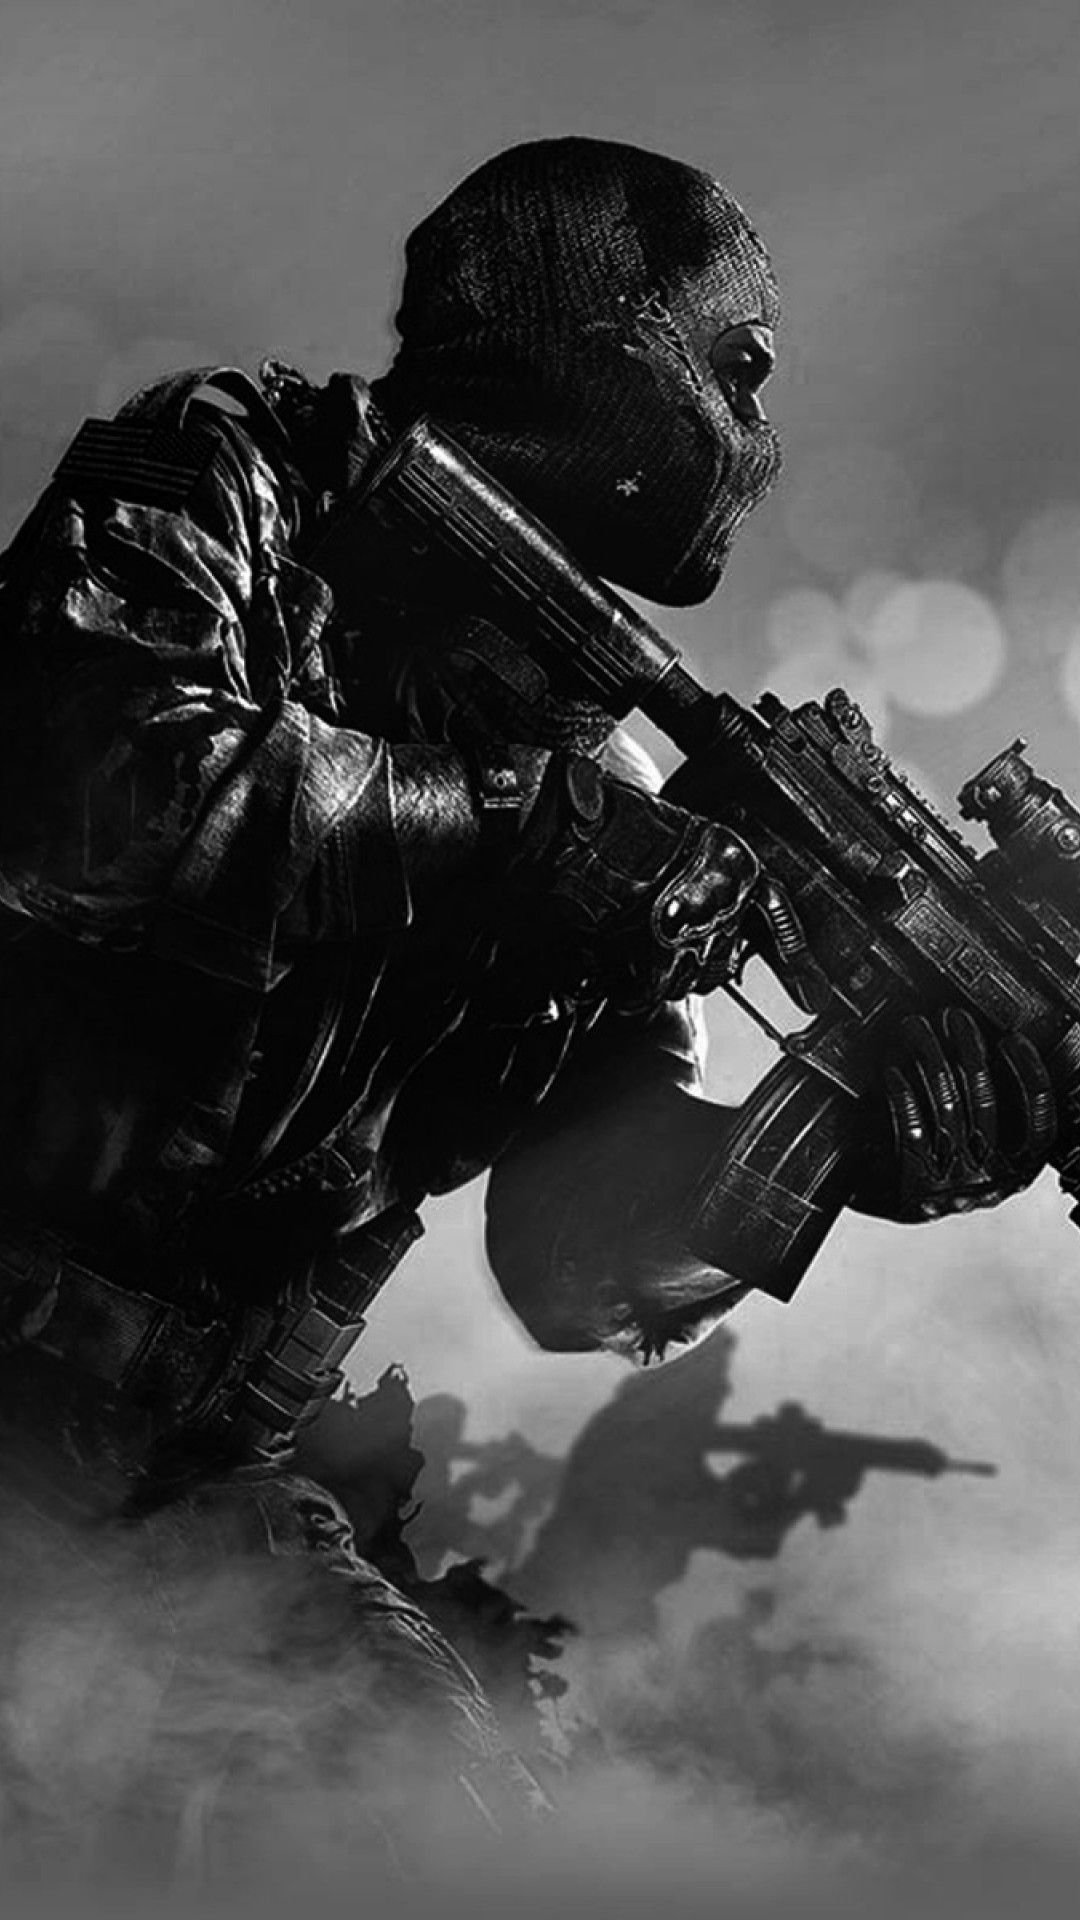 Call Of Duty Wallpaper Iphone Call of duty ghosts, Call